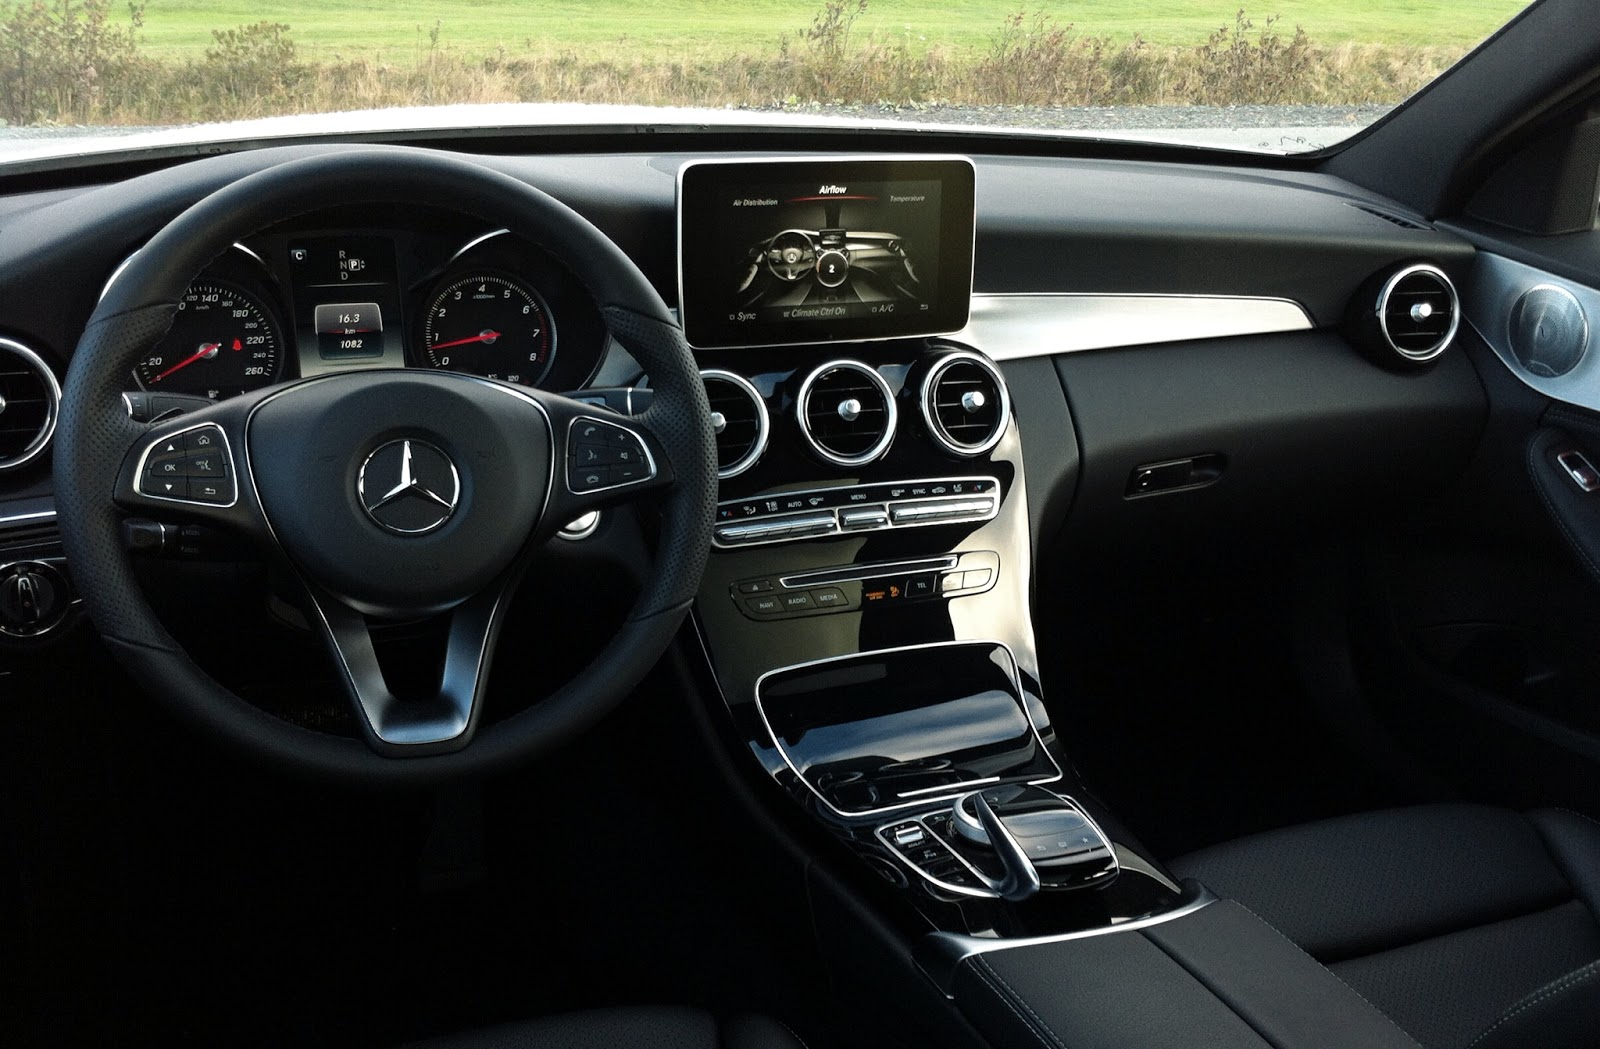 2015 mercedes benz c400 4matic review an actual luxury car purchase and sale cars. Black Bedroom Furniture Sets. Home Design Ideas